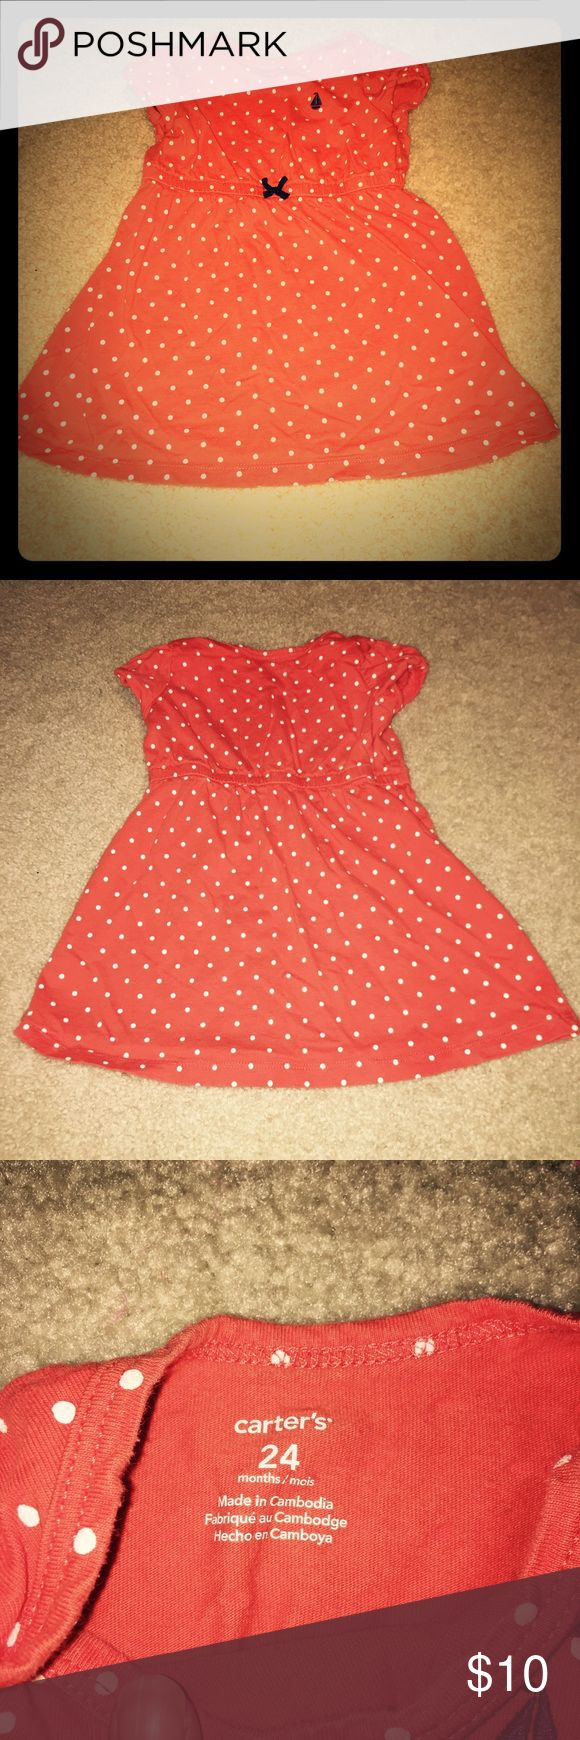 Carter's Polka Dot Orange Short Sleeve Dress This Carter's orange Polka Dot dress is in EUC. It features a elastic waist, shirt sleeve, small bow in the front and a sailboat on the left upper chest. 100% cotton Carter's Dresses Casual